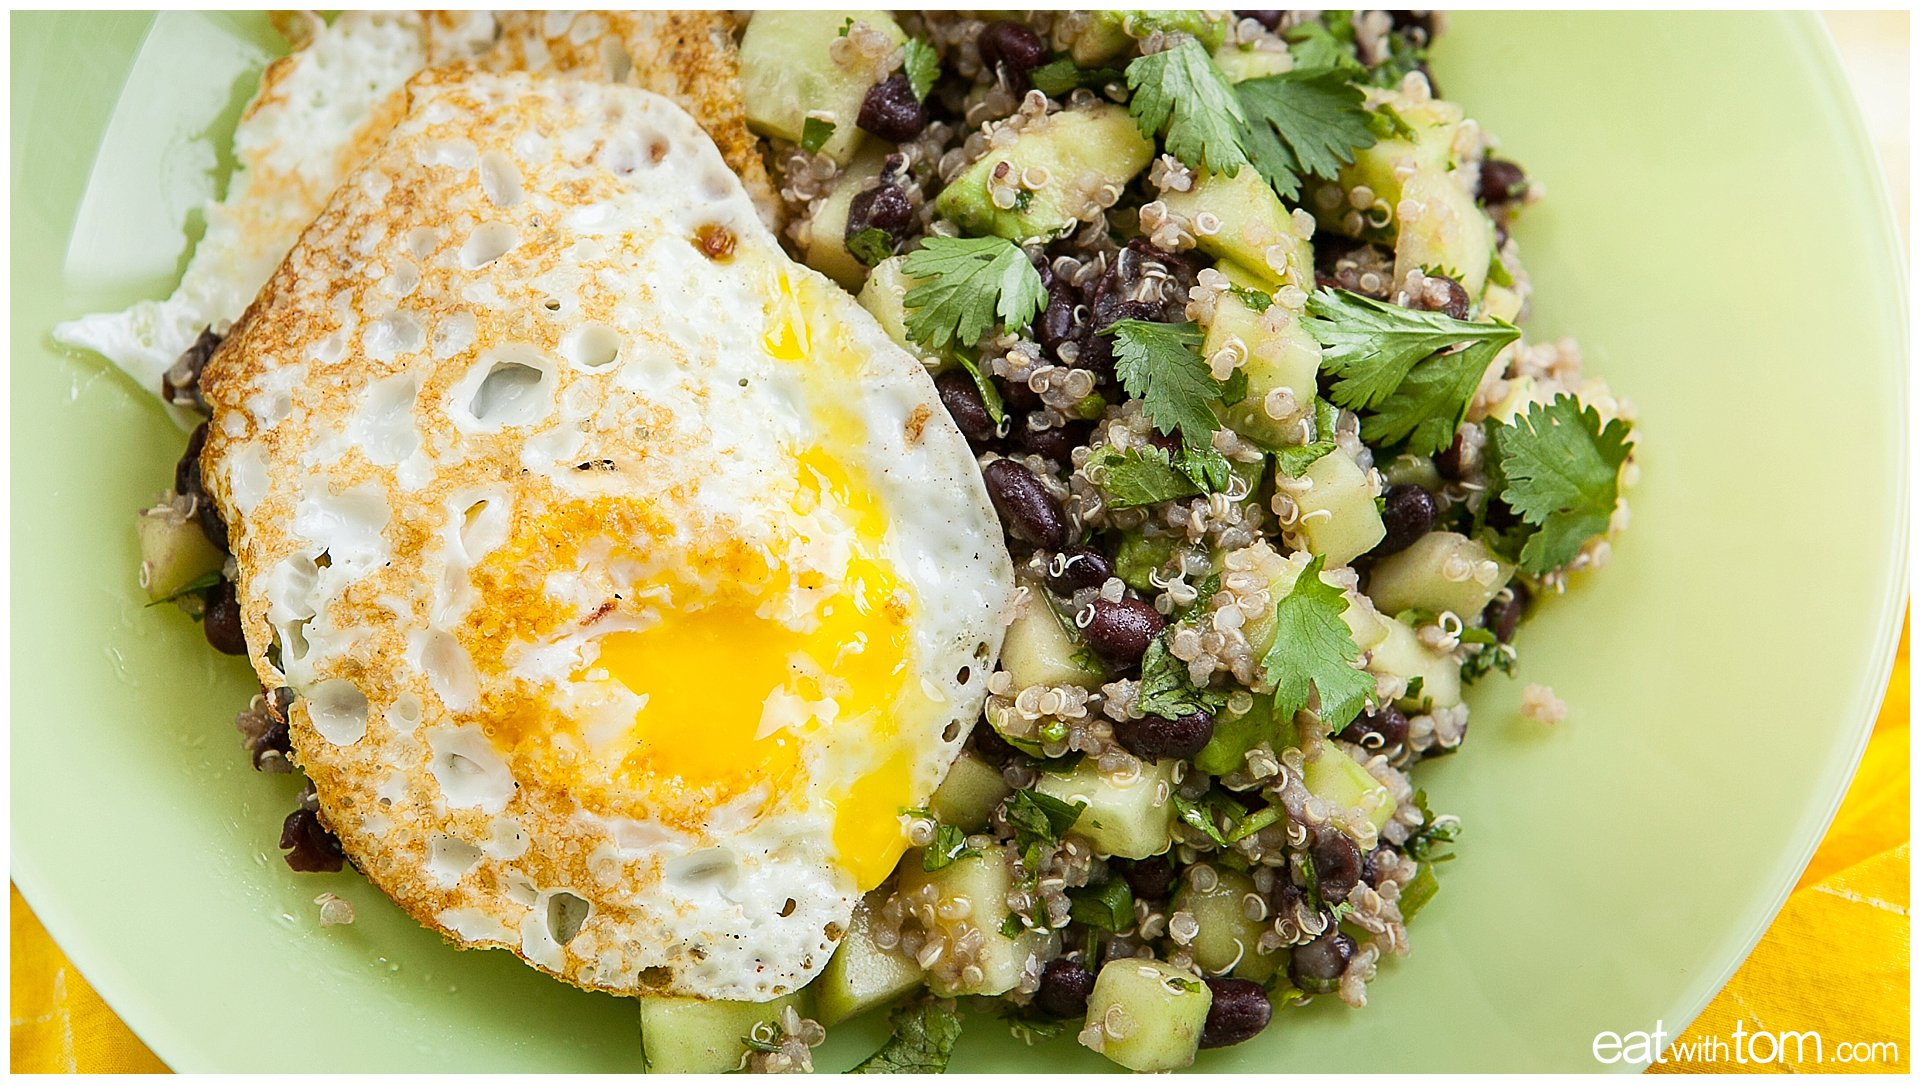 Quinoa Recipe Healthy Eating Ideas - Avocado Black Beans Cilantro Cucumbers Easy Lunch